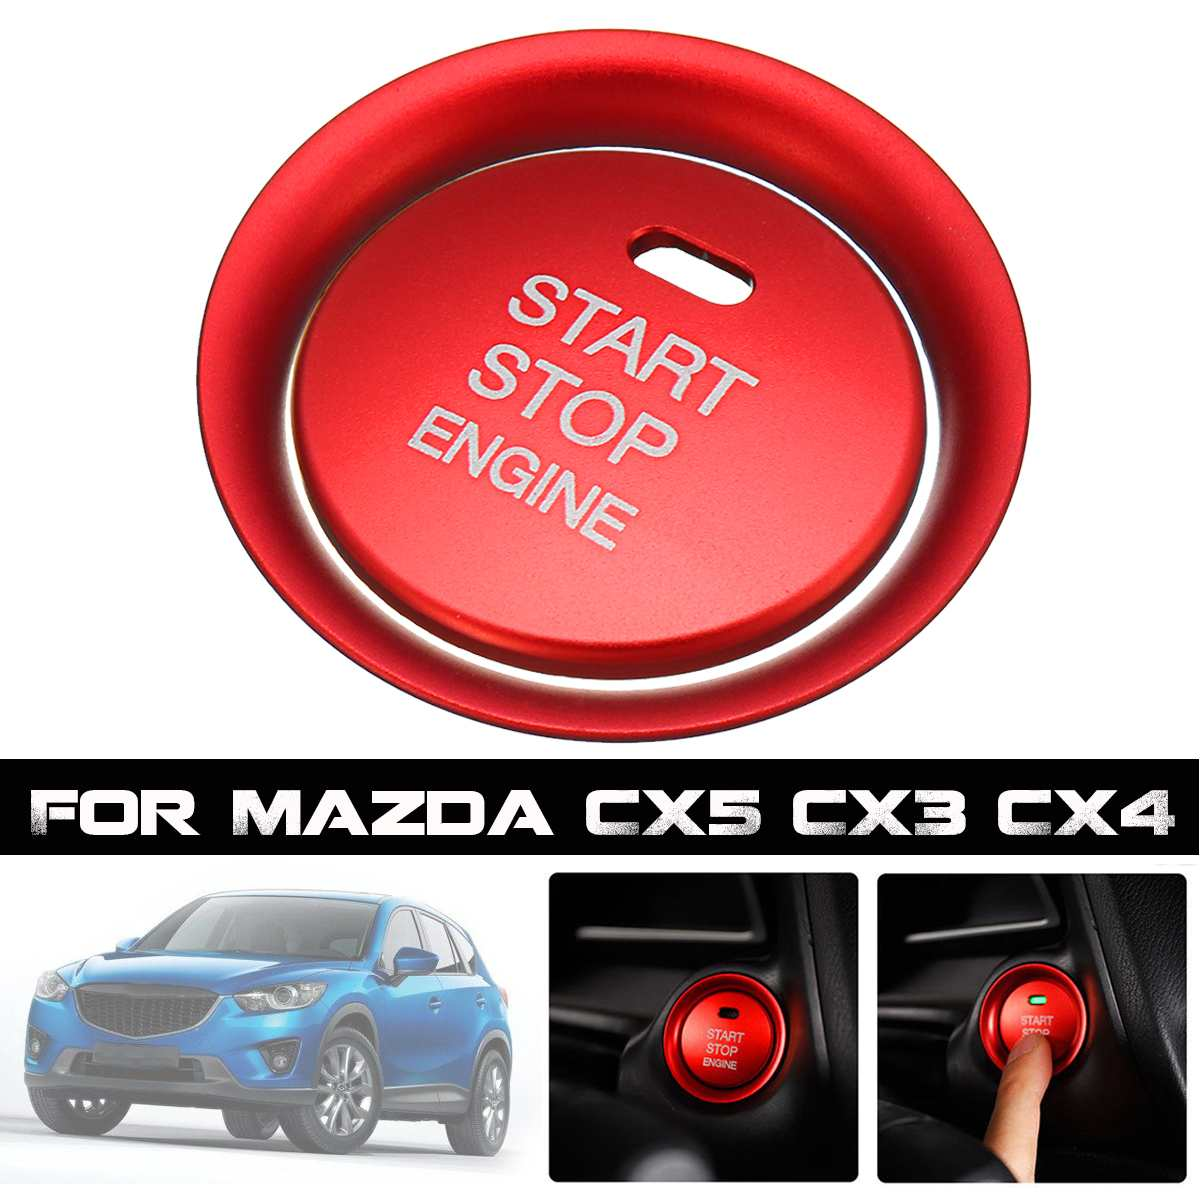 Car Engine Start Stop Push Switch Button Cover + Ring Trim for <font><b>Mazda</b></font> <font><b>CX5</b></font> CX3 CX4 Upgrade Car Styling Button Cover image